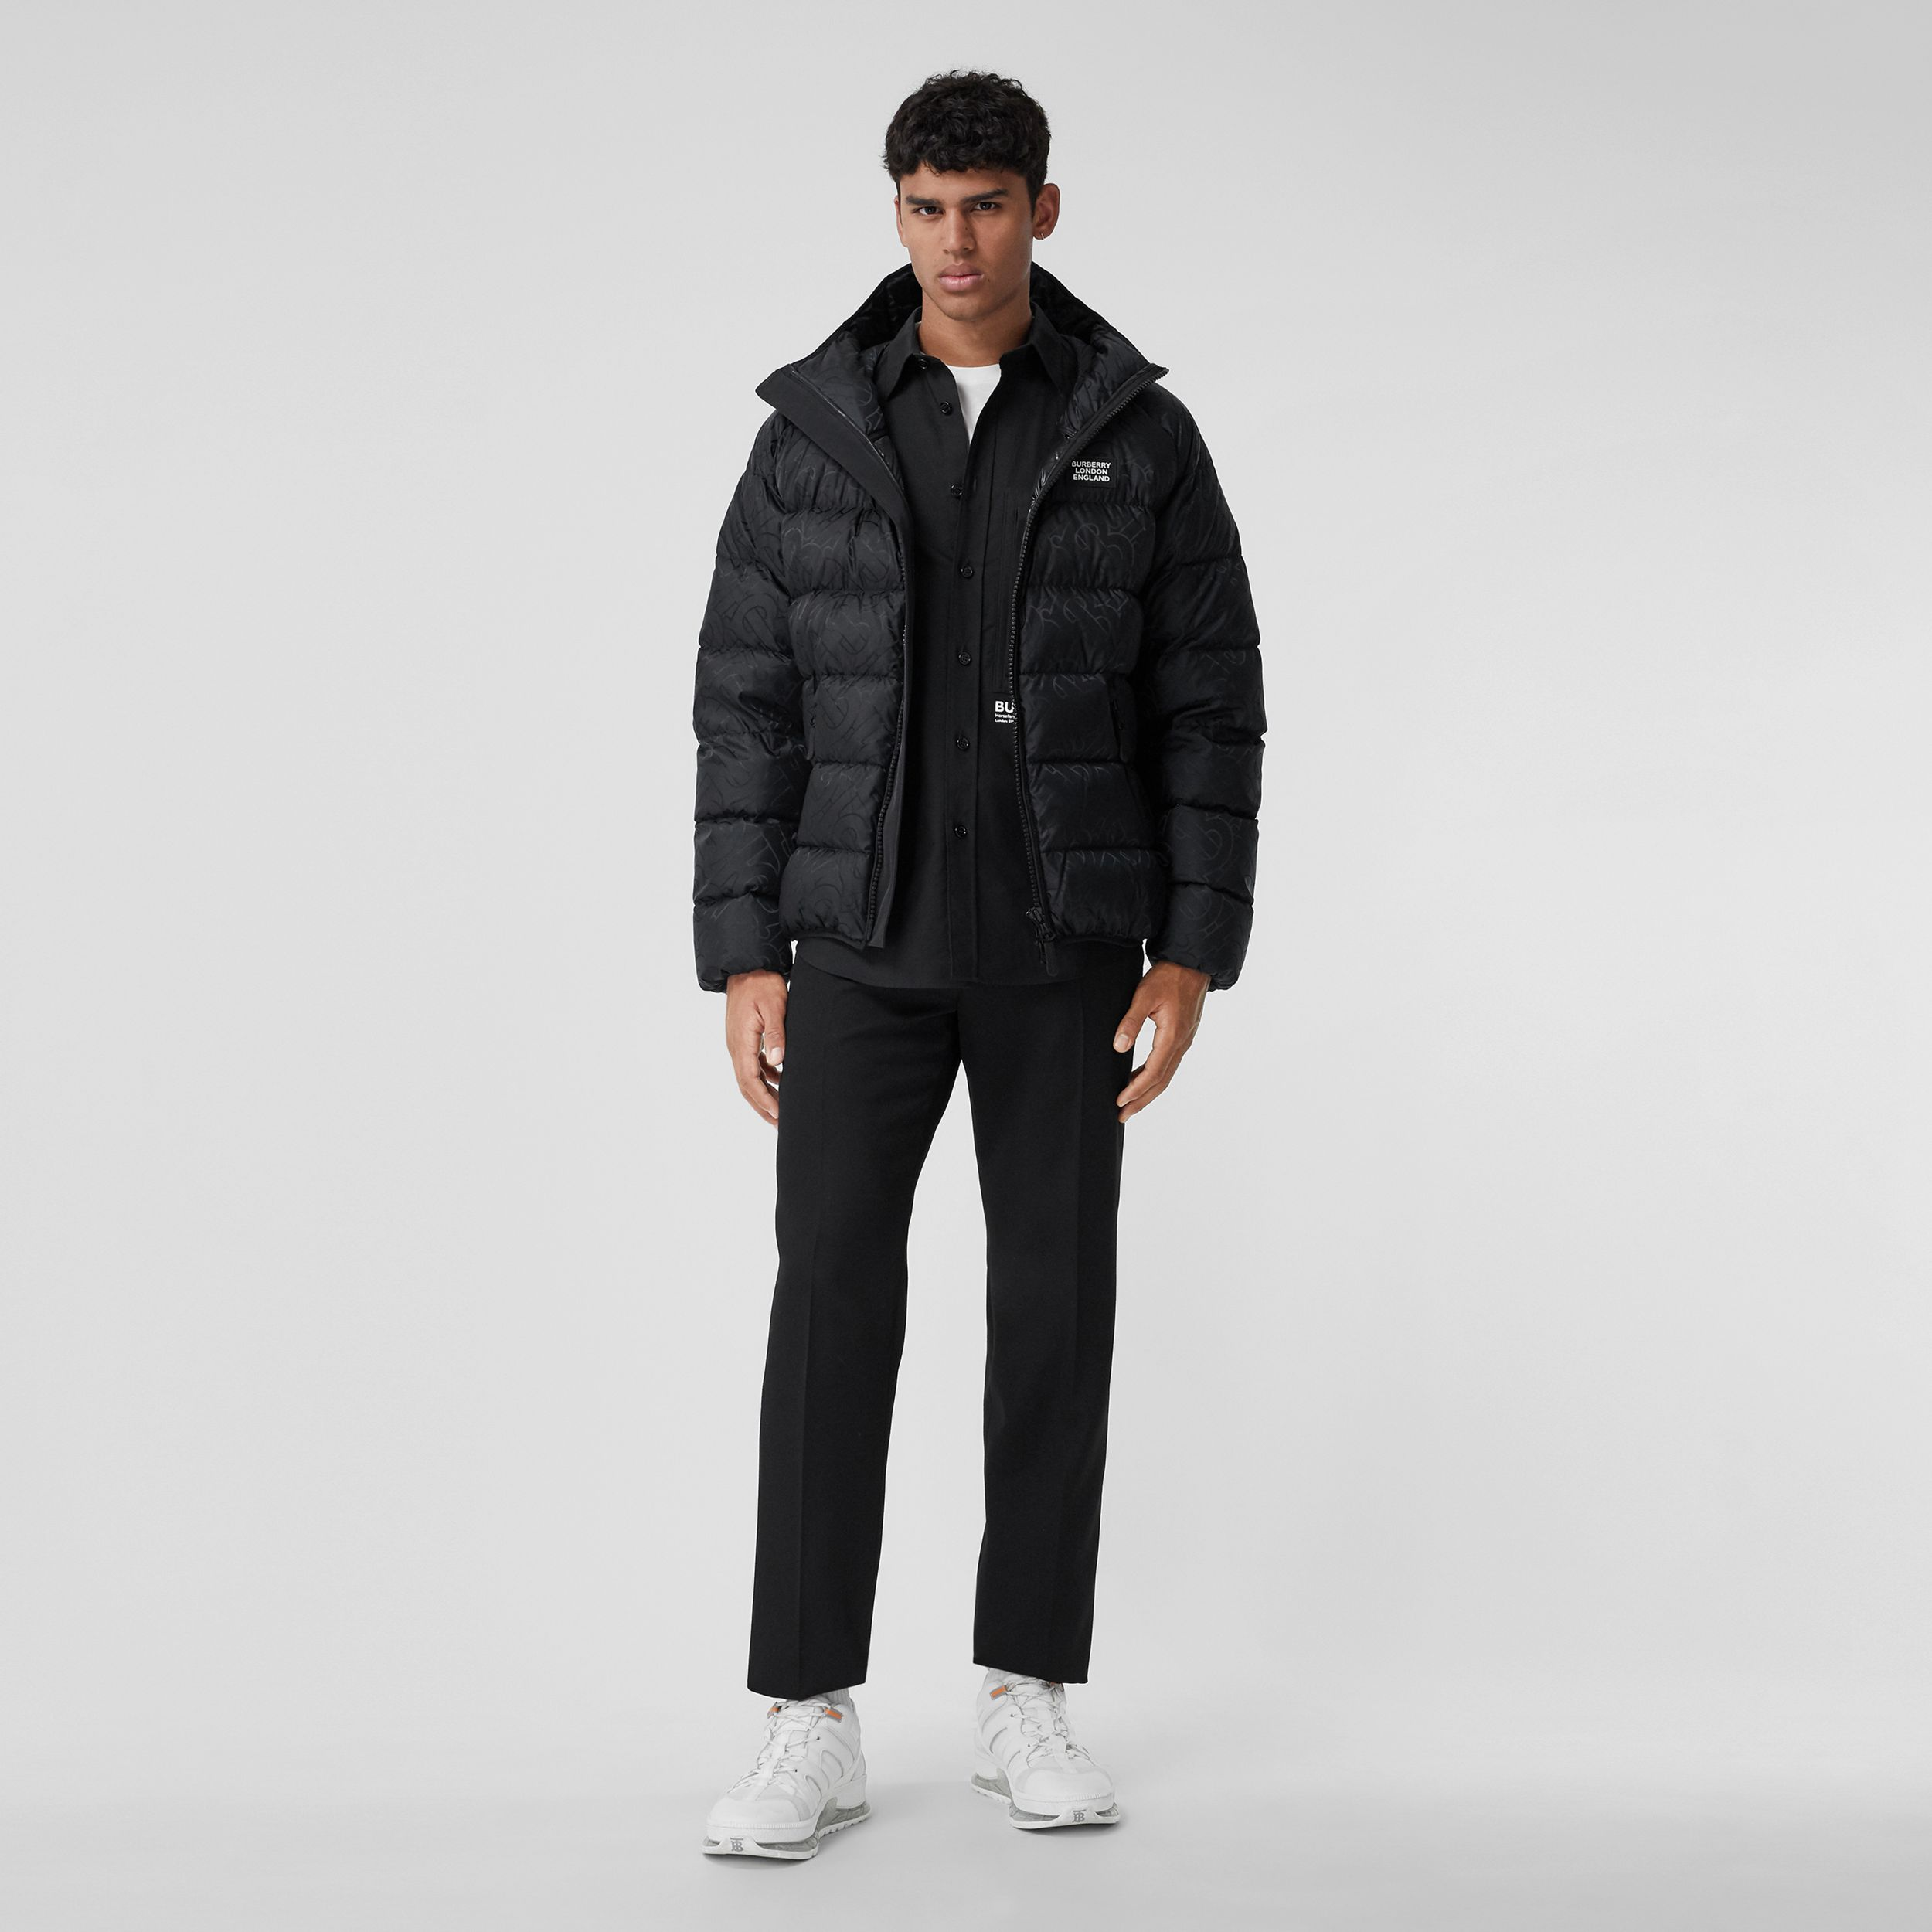 Monogram Jacquard Hooded Puffer Jacket in Black - Men | Burberry Canada - 1